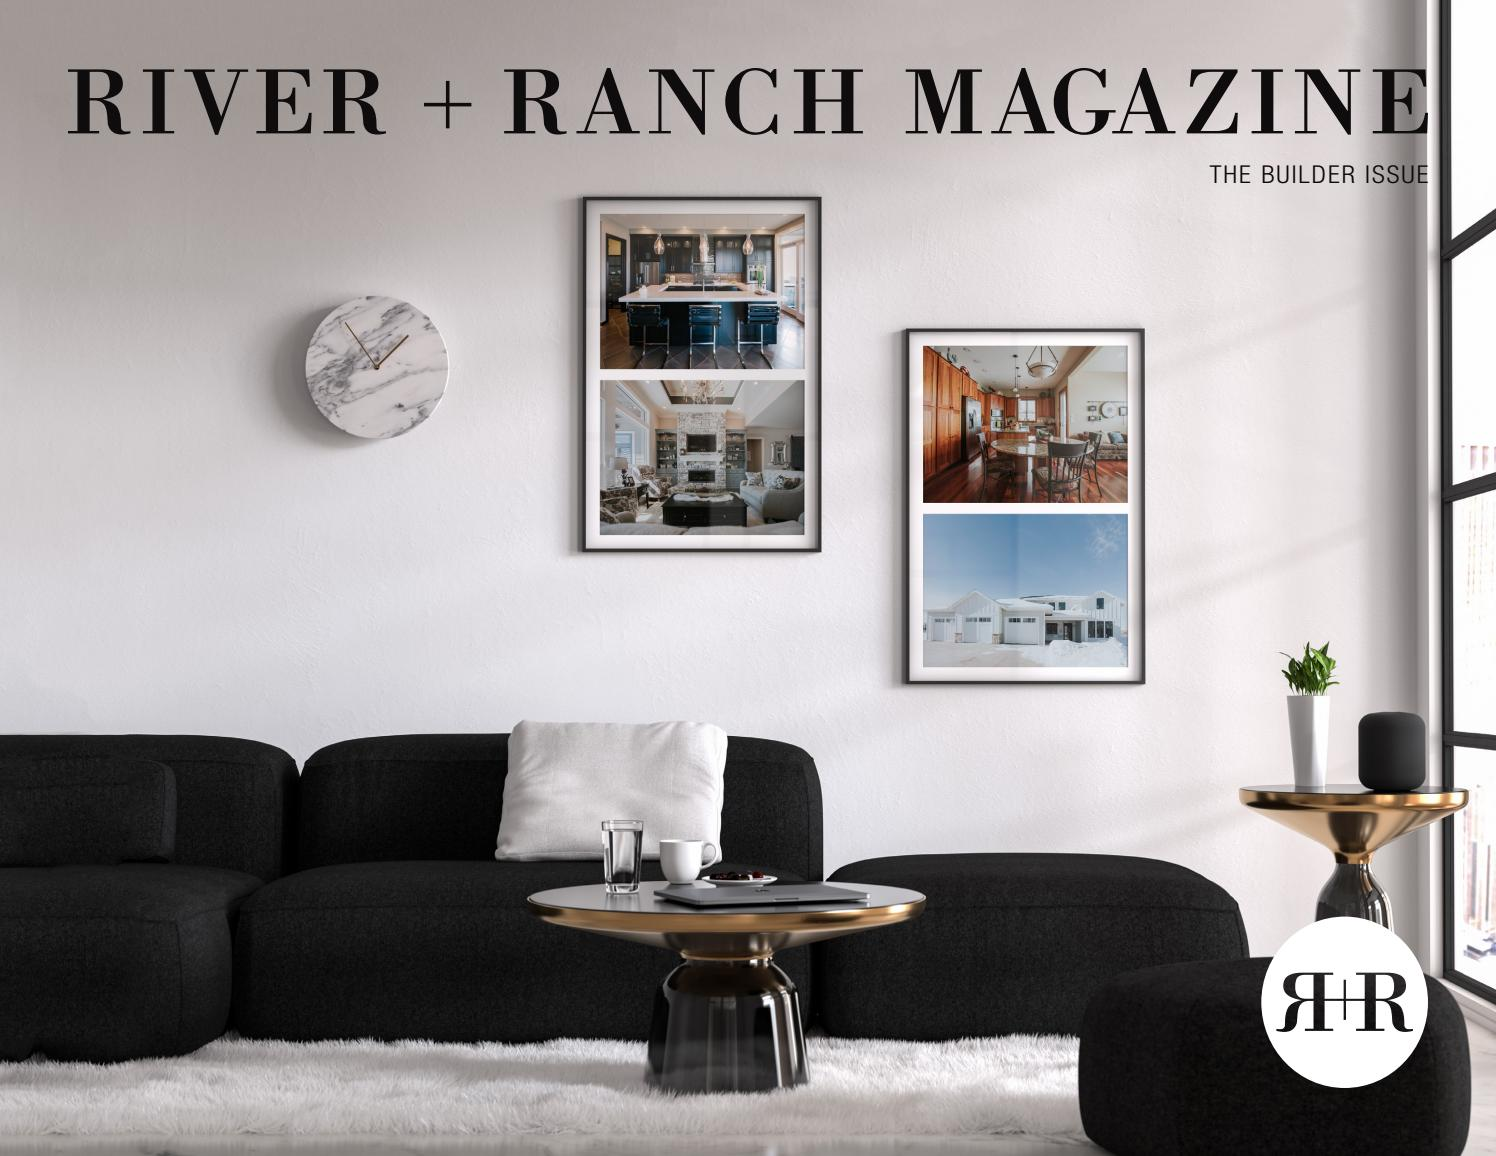 River Ranch Magazine Volume 2 Issue 2 April May 2019 By Bismarck Magazine Issuu